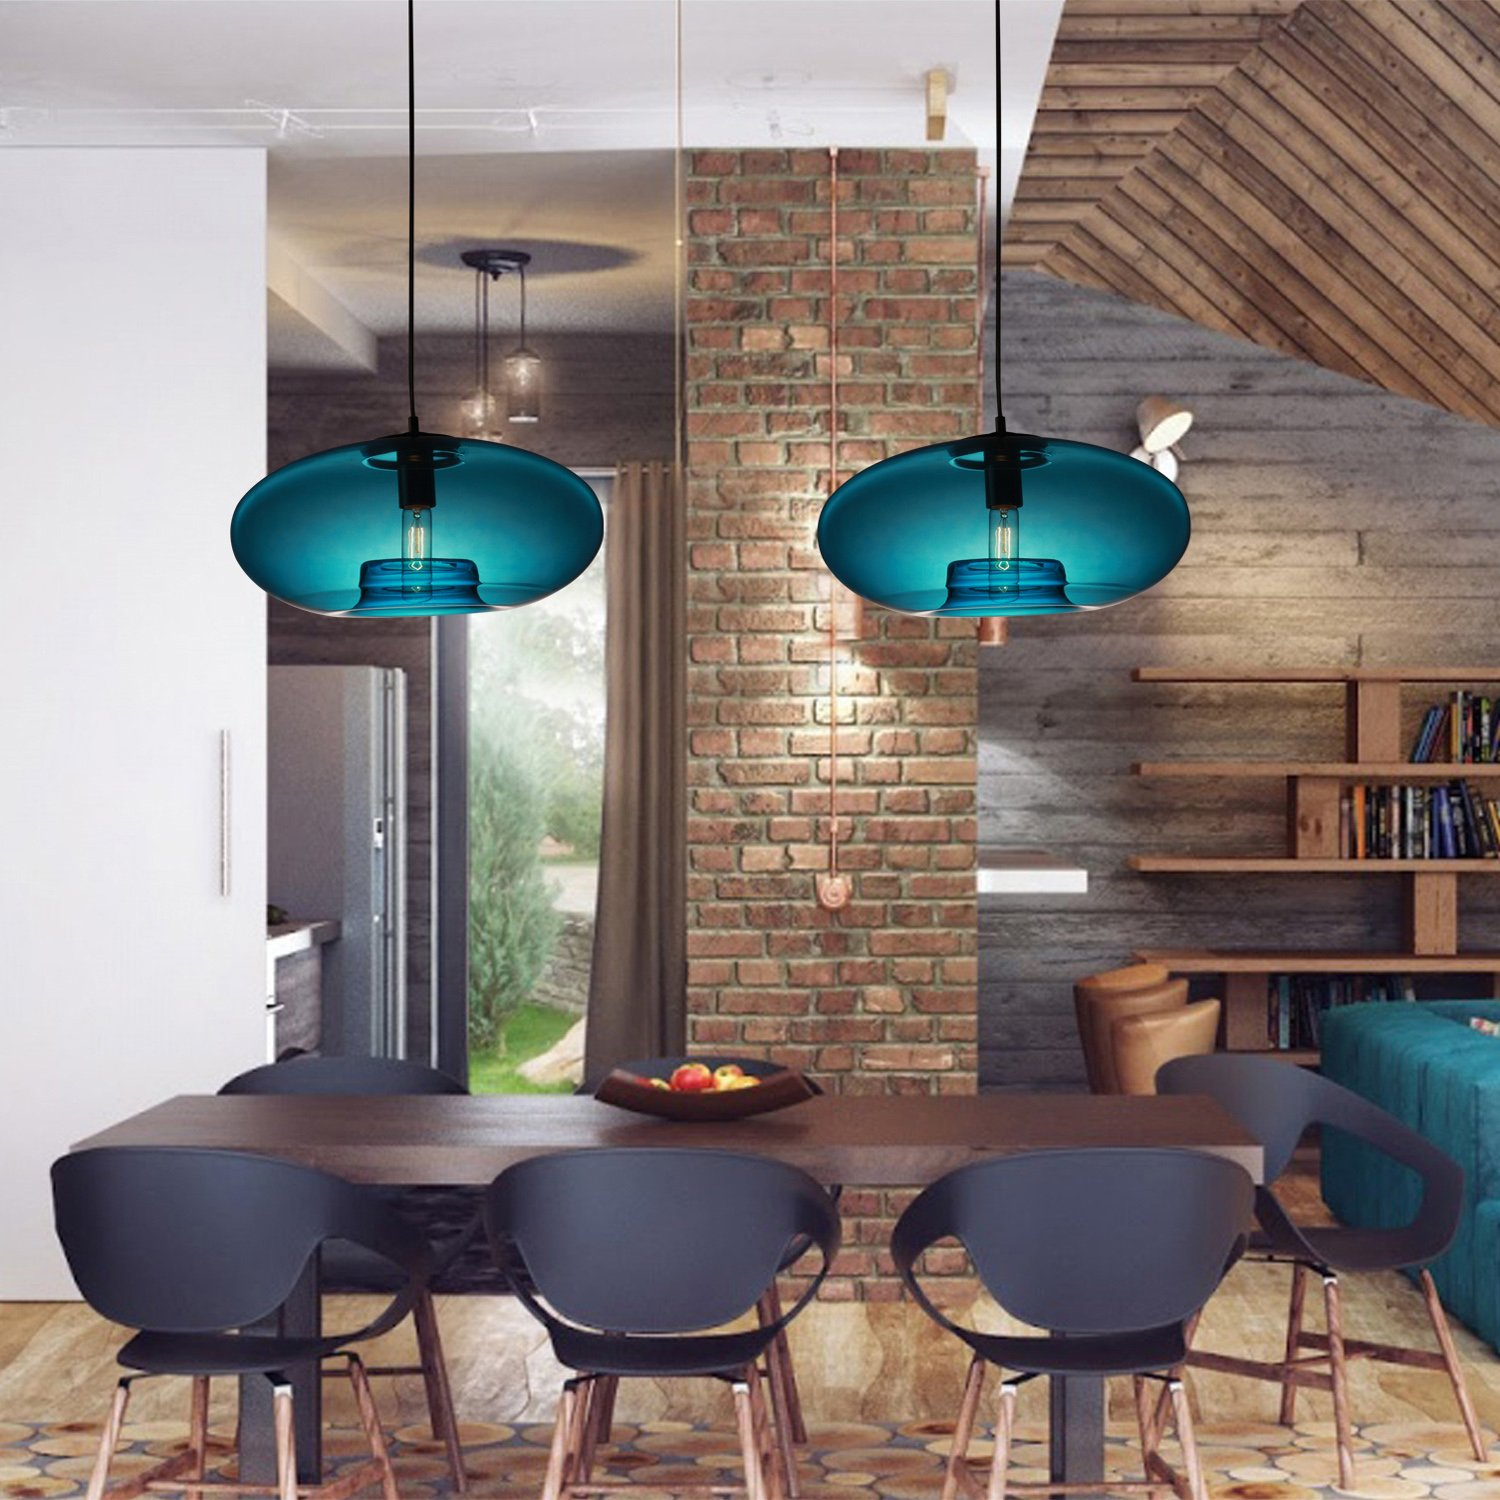 Top 20 pendant luxury lighting blue luxury lighting for dining room design luxury lighting top 20 pendant luxury lighting e2435001303238959623481ef14b4683 aloadofball